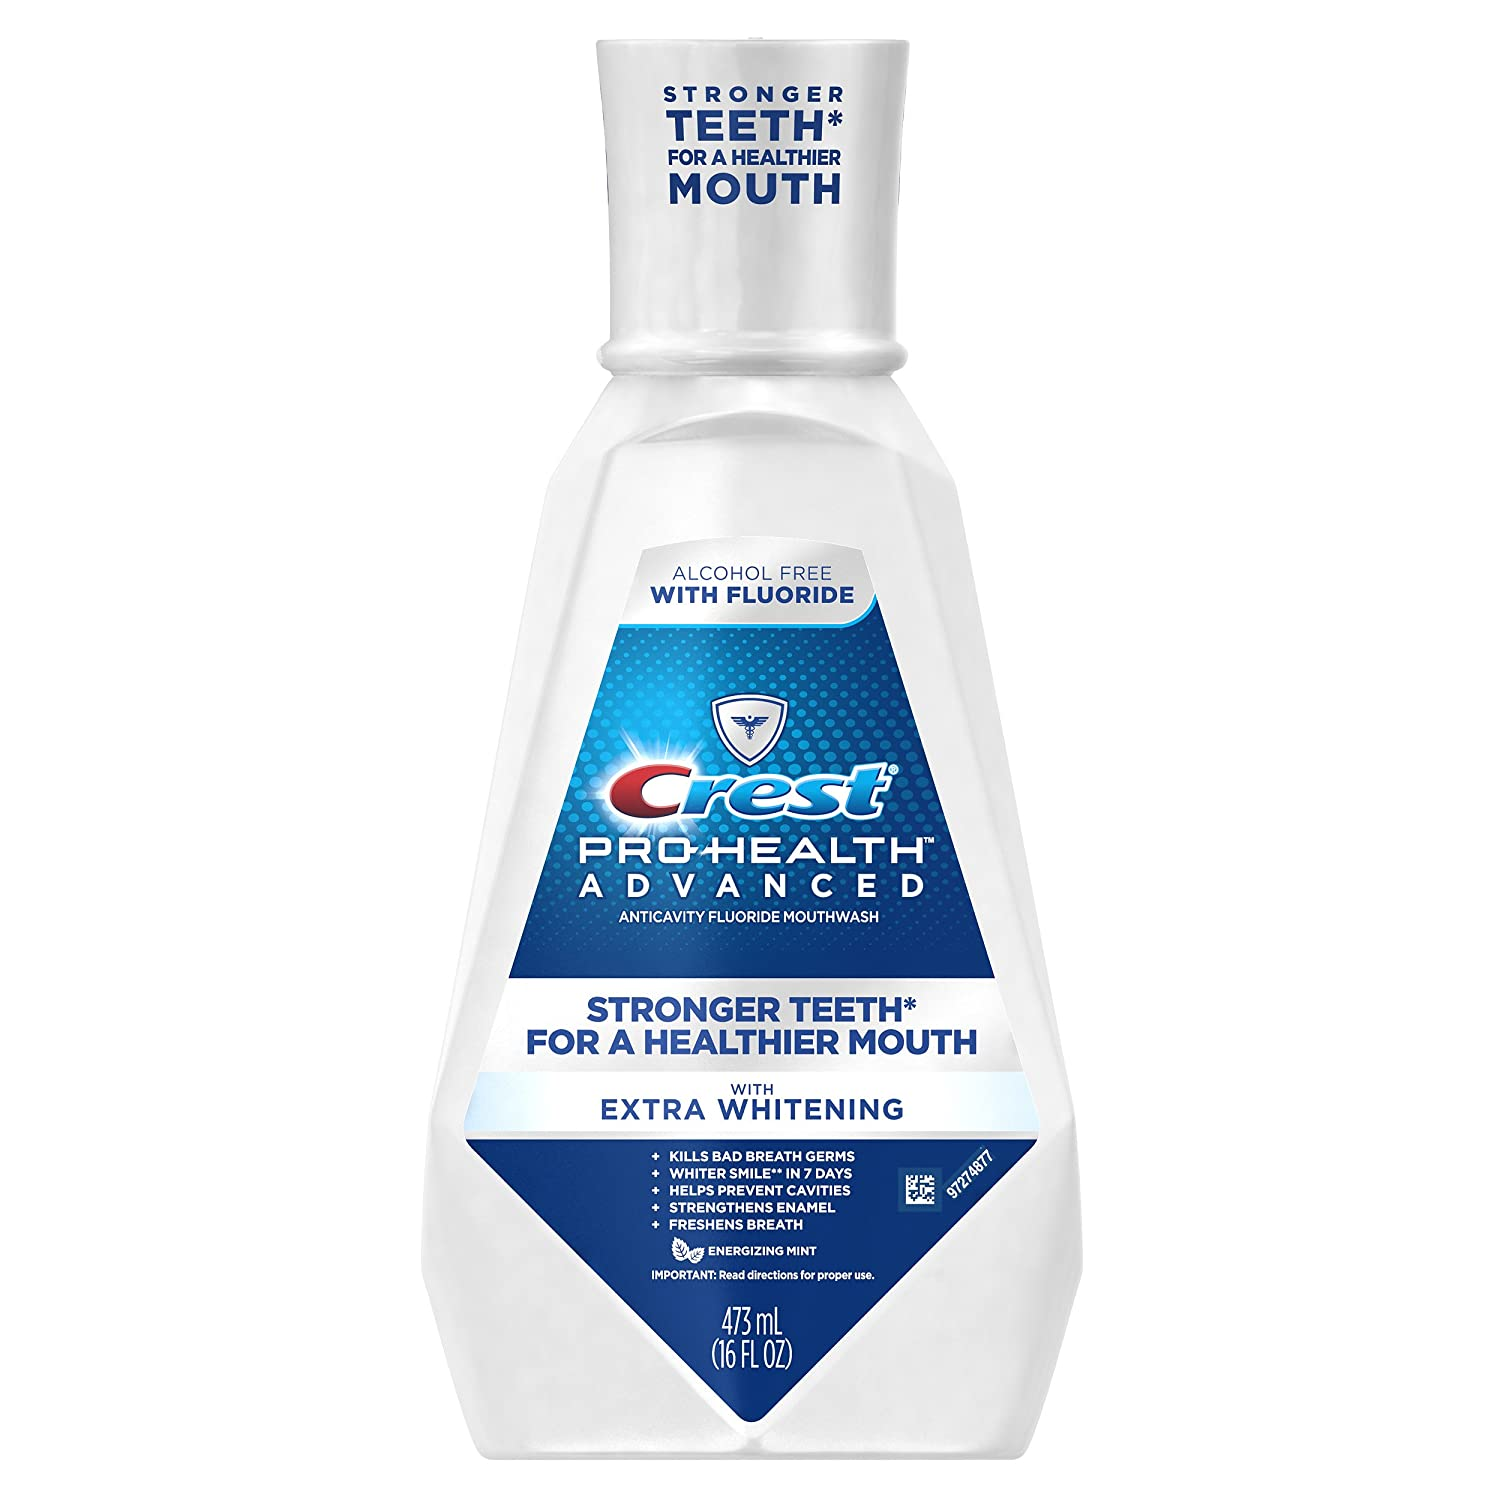 Crest Pro-Health Advanced Mouthwash with Extra Whitening, Energizing Mint, 16 Fluid Ounce